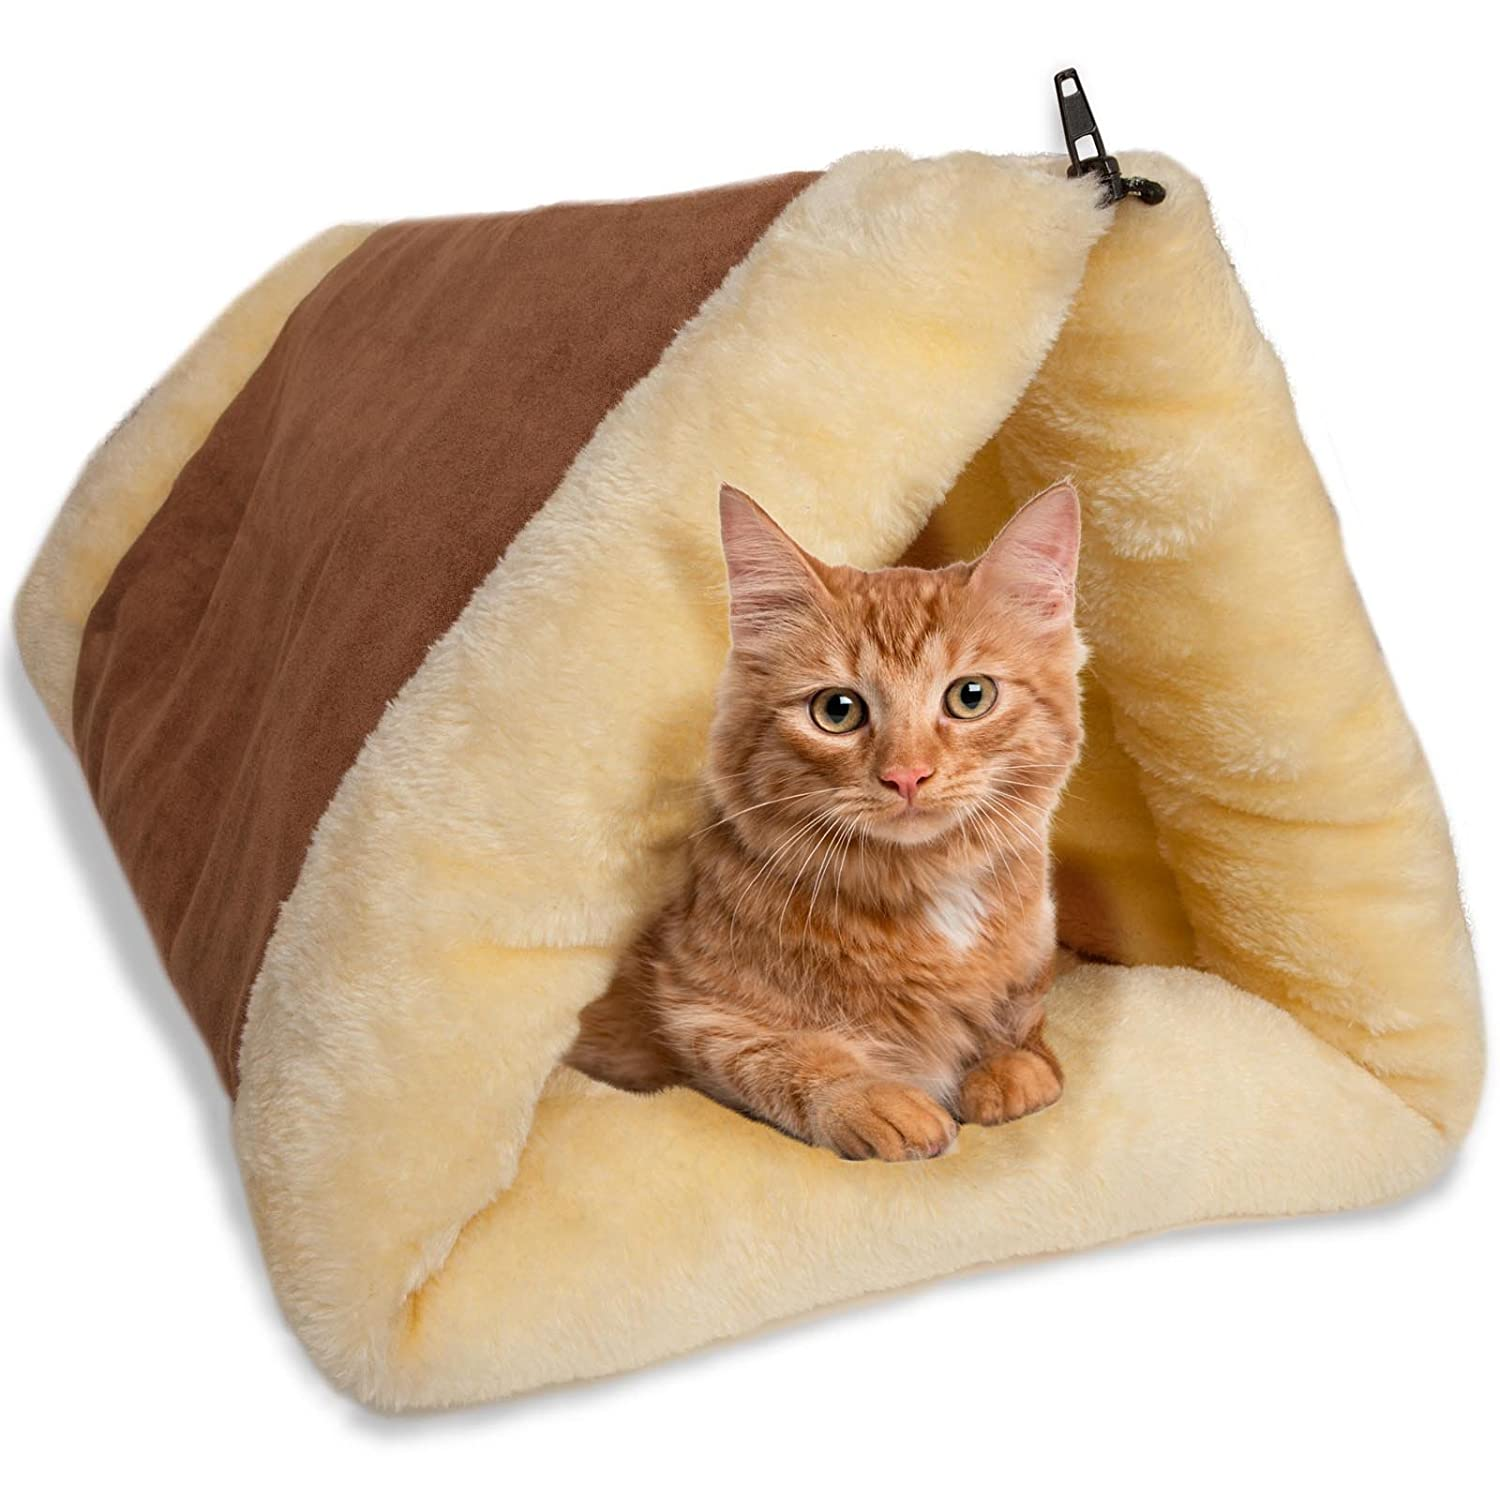 OxGord 2-in-1 Cat Pet Bed Tunn...